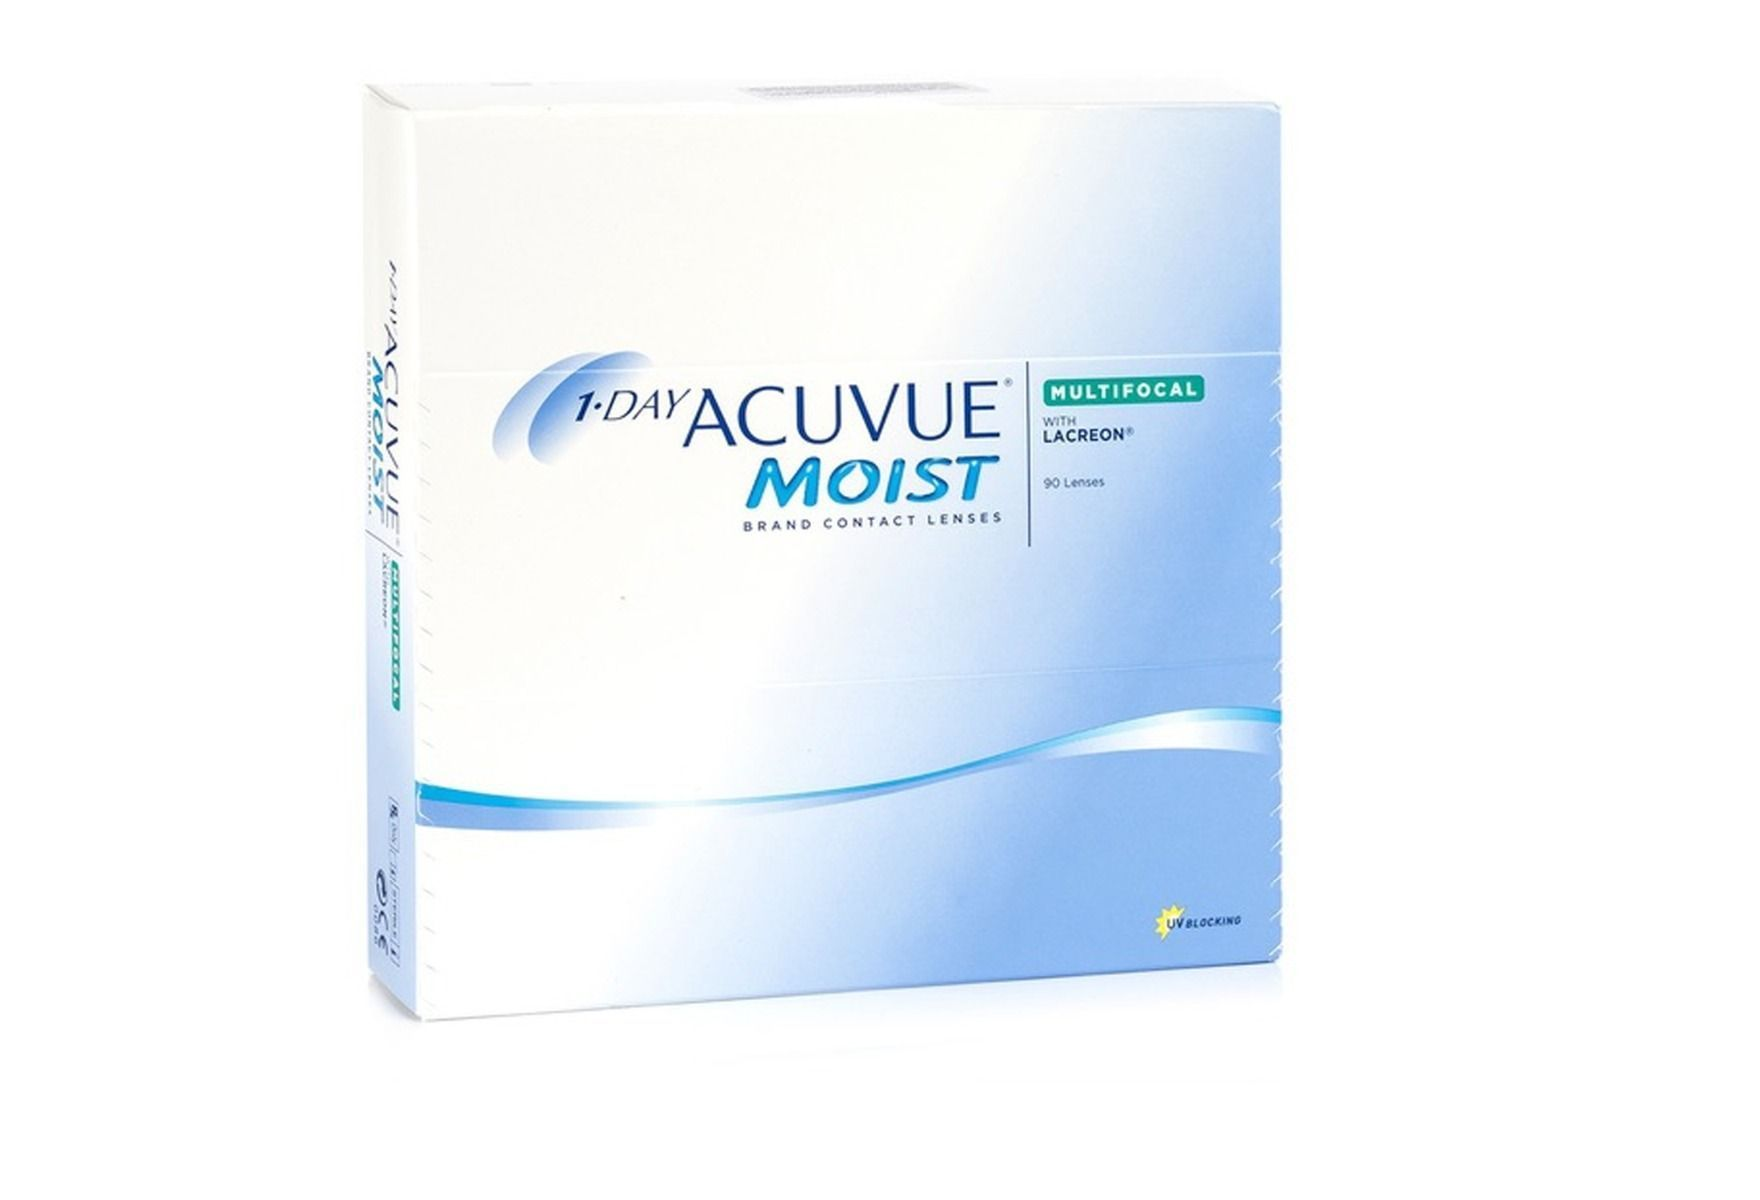 1-DAY ACUVUE MOIST MULTIFOCAL 90 stk